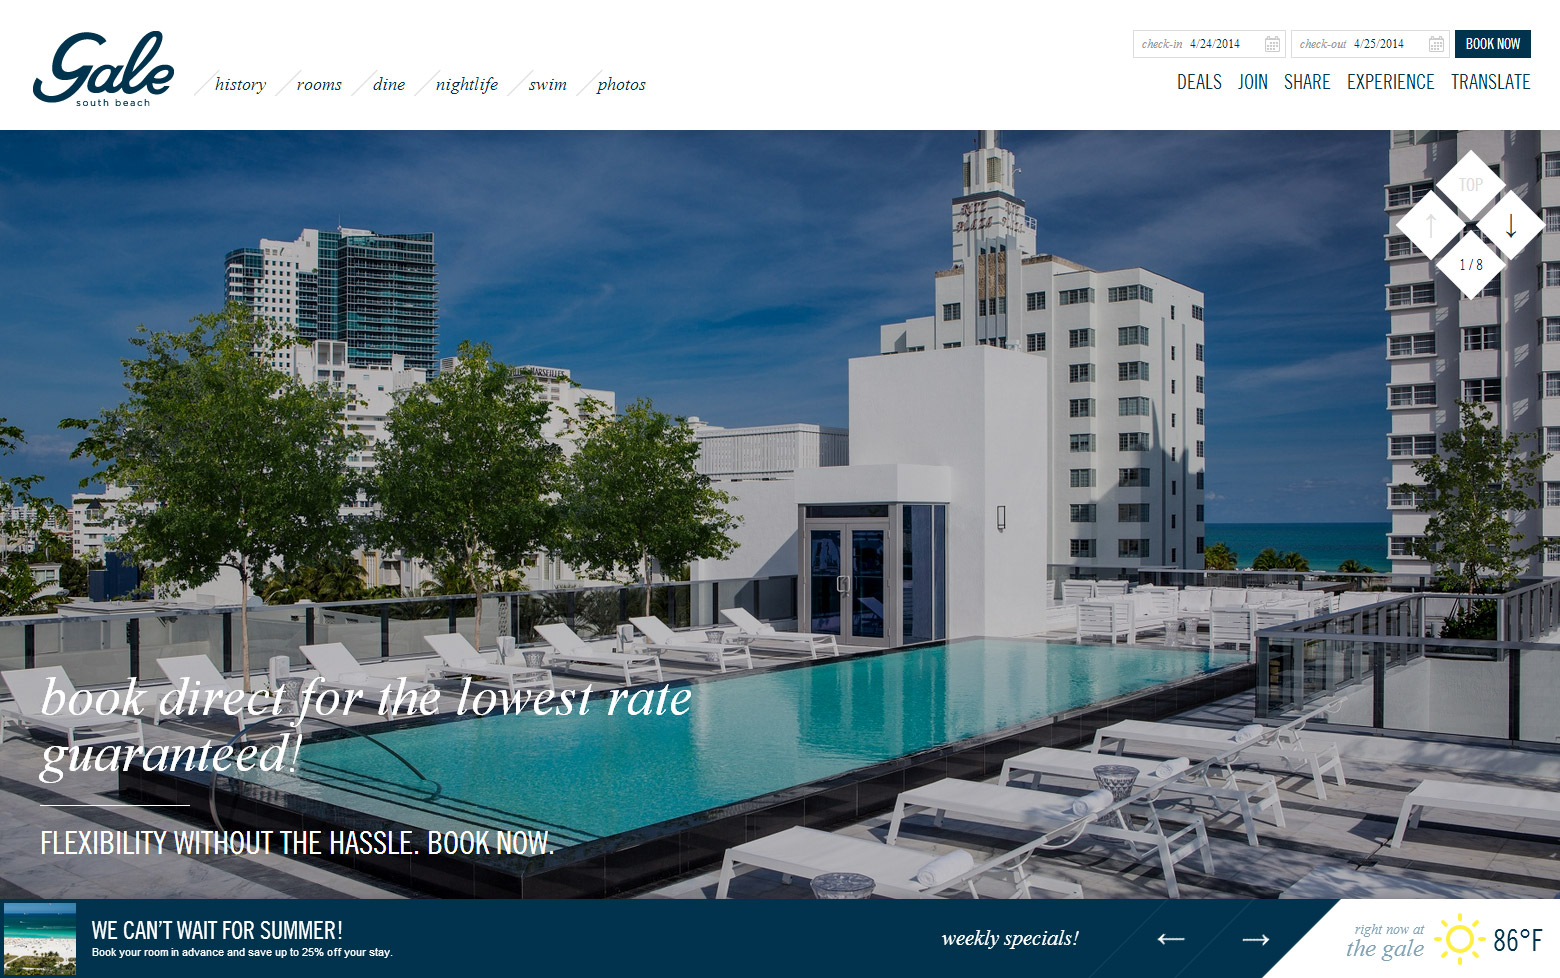 Gale Hotel South Beach Miami - MENIN Hospitality